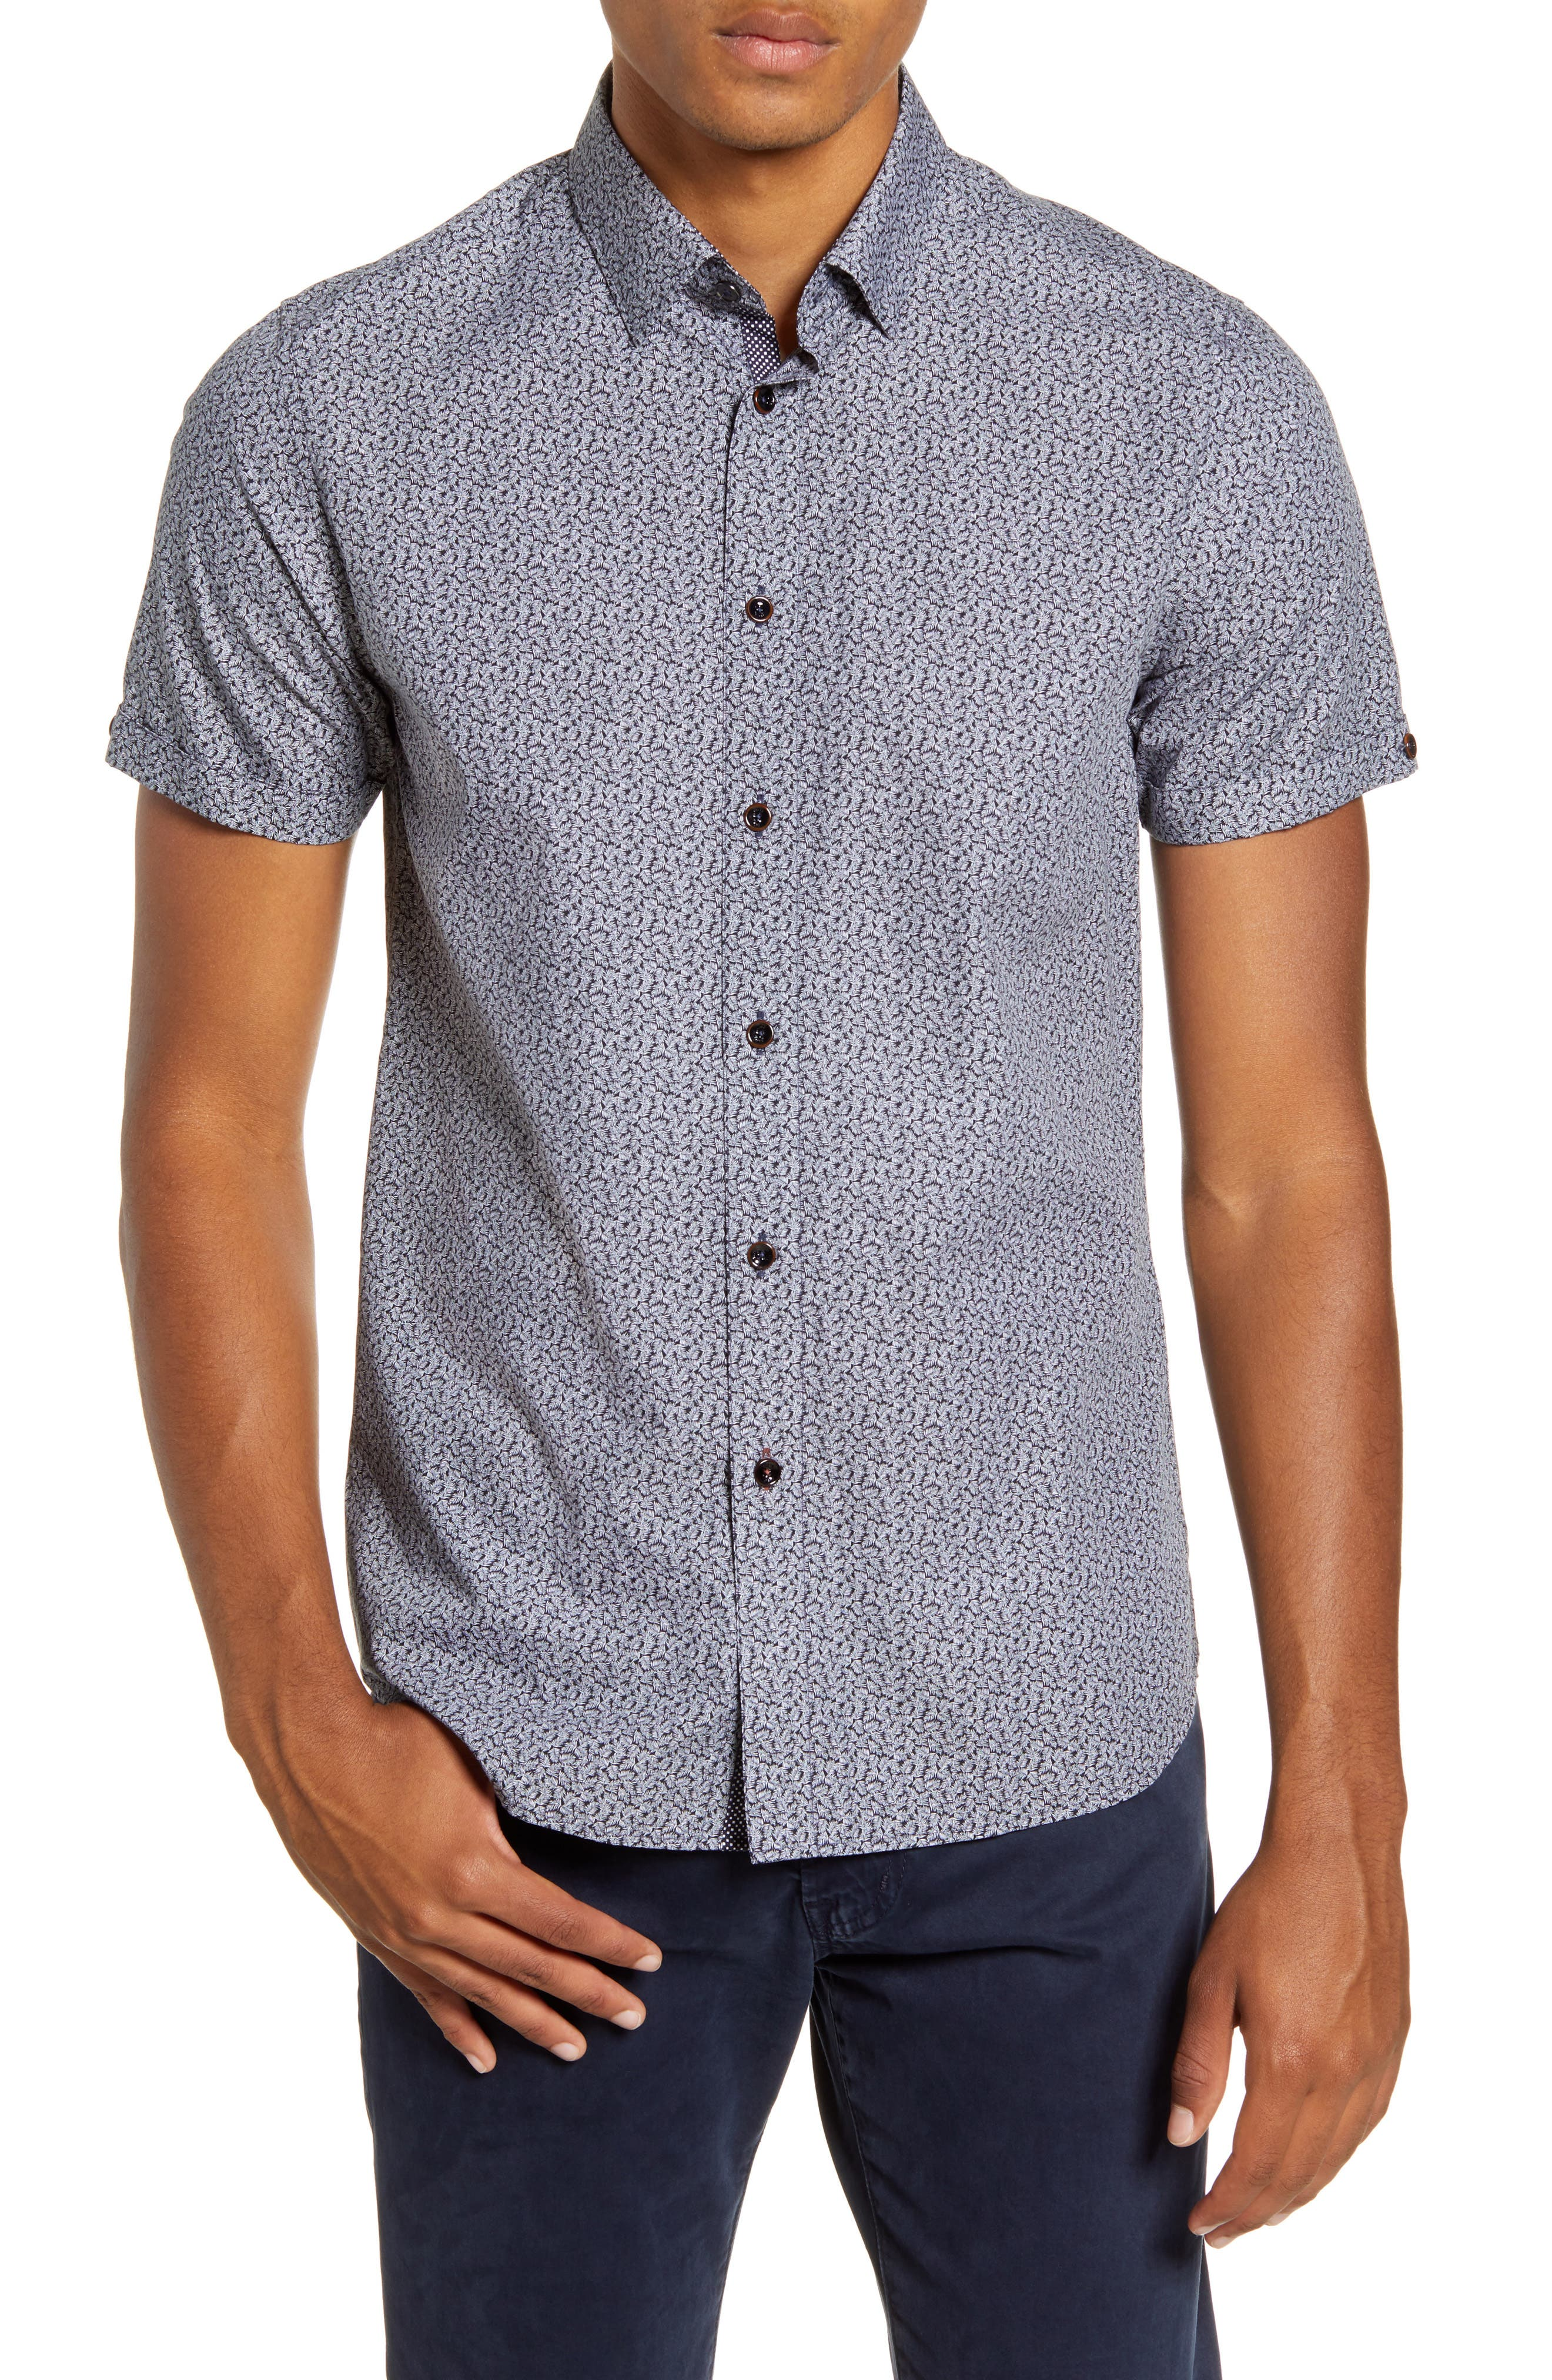 Ted Baker London T-shirts Daffodil Slim Fit Leaf Print Button-Up Short Sleeve Sport Shirt